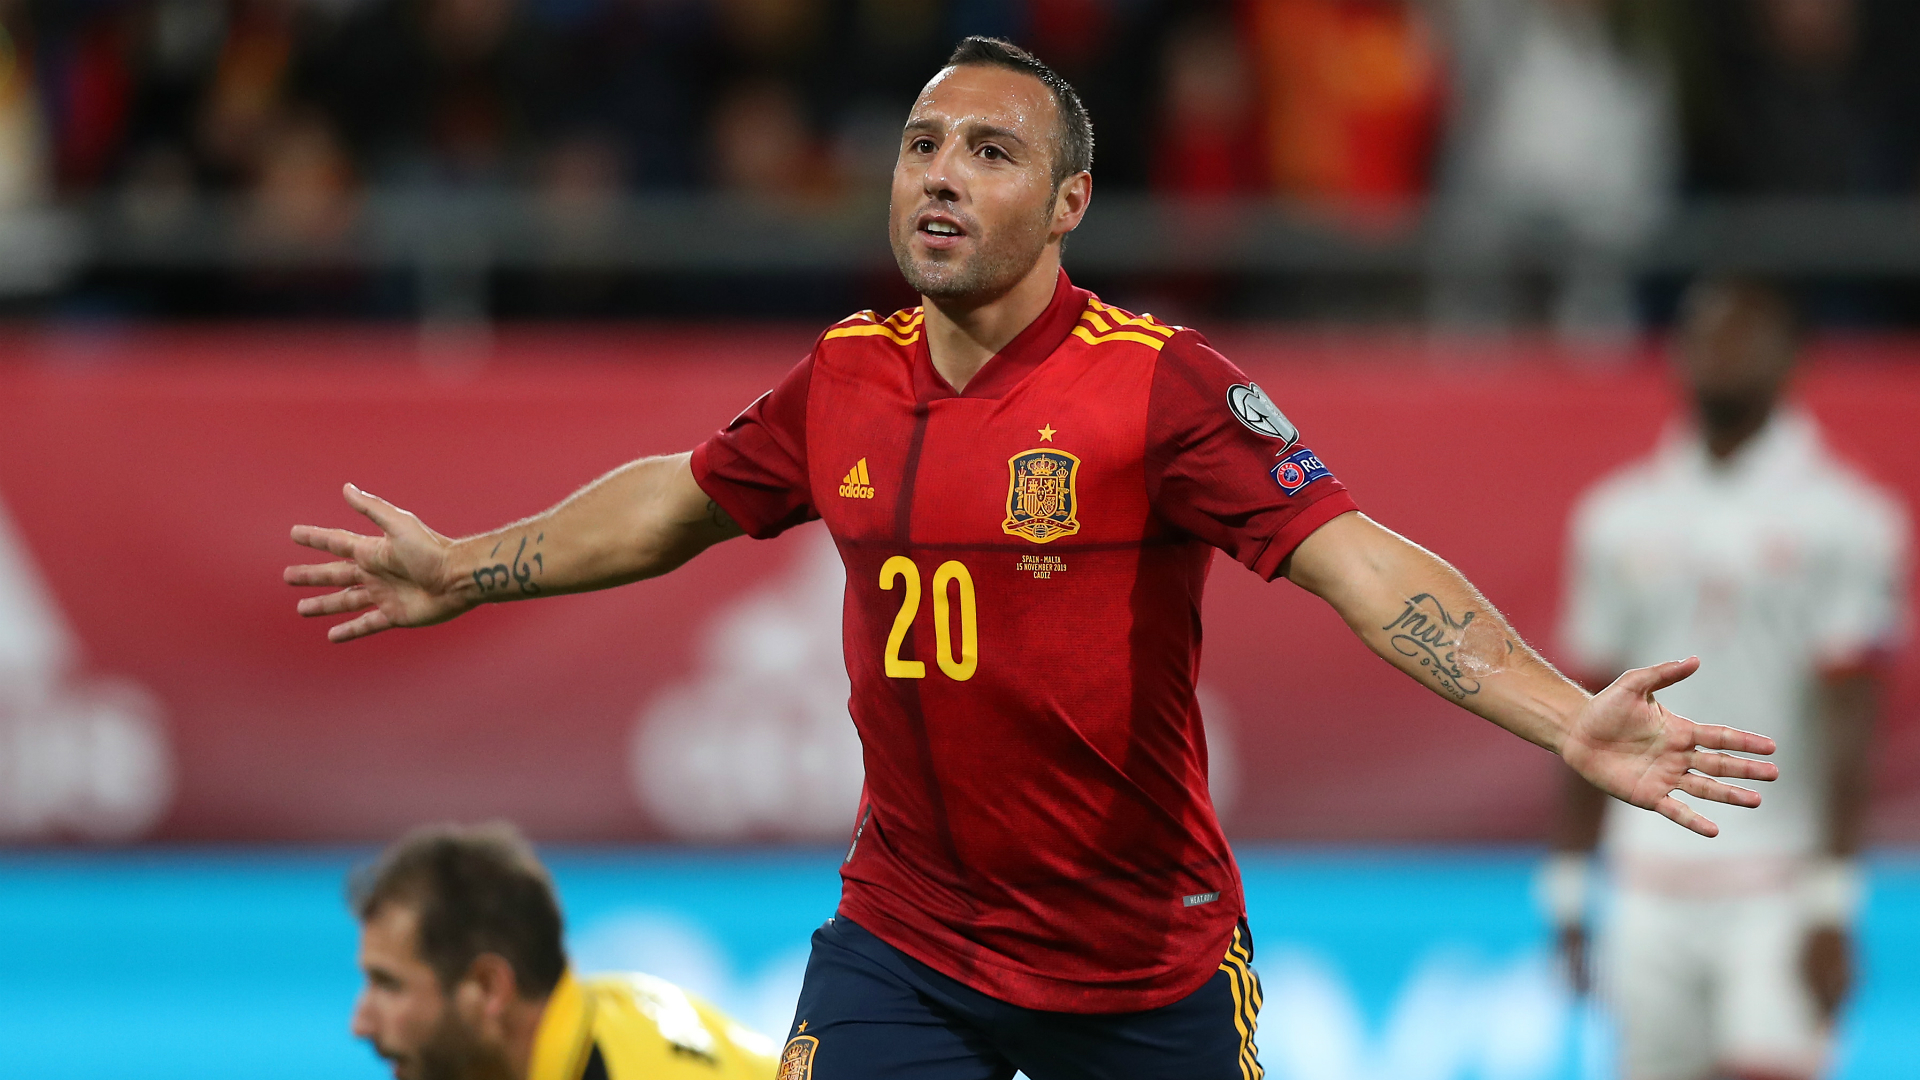 Spain 7-0 Malta: Cazorla strikes in Cadiz cruise